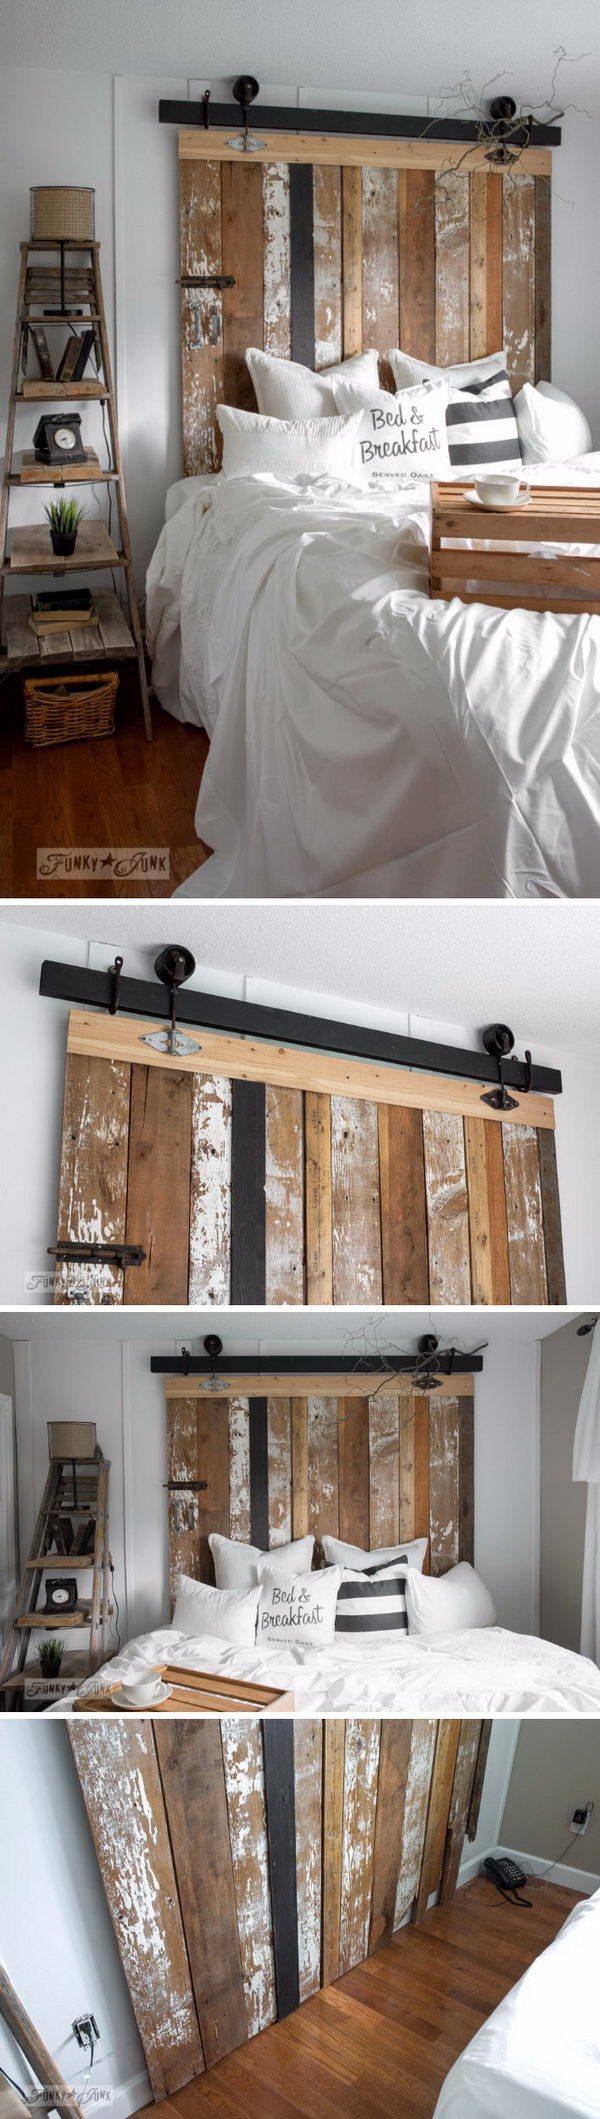 Diy Reclaimed Wood Barn Door Headboard With Faux Hardware